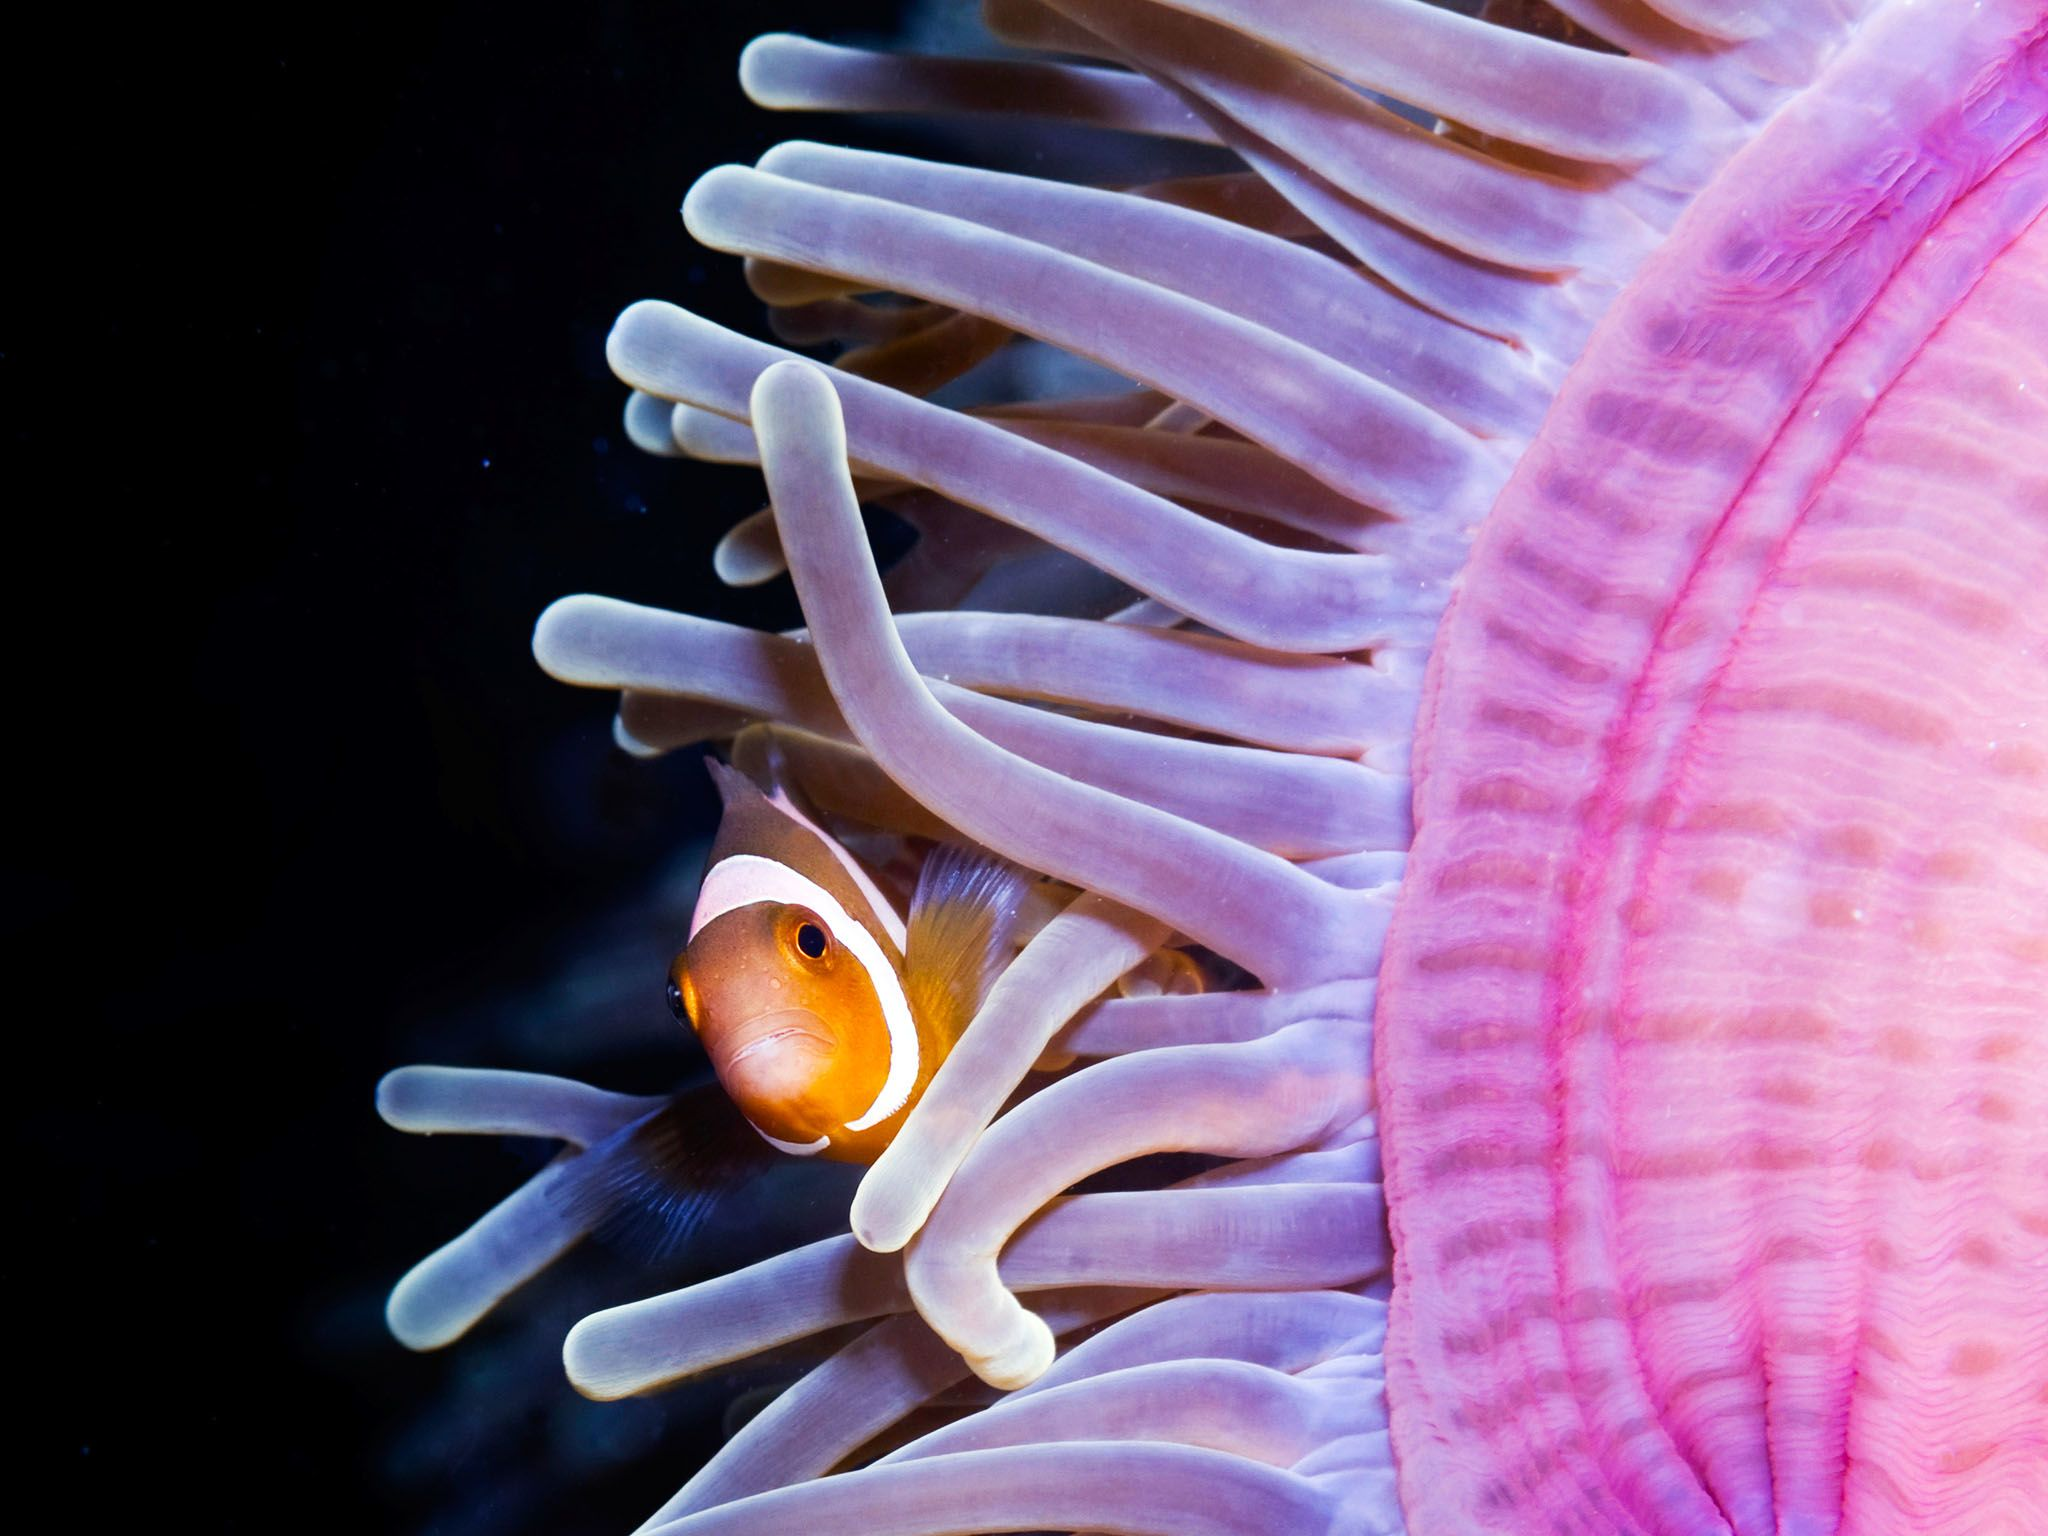 Clownfish bunker down among the venomous tentacles of the sea anemone. This image is from... [Photo of the day - August 2015]